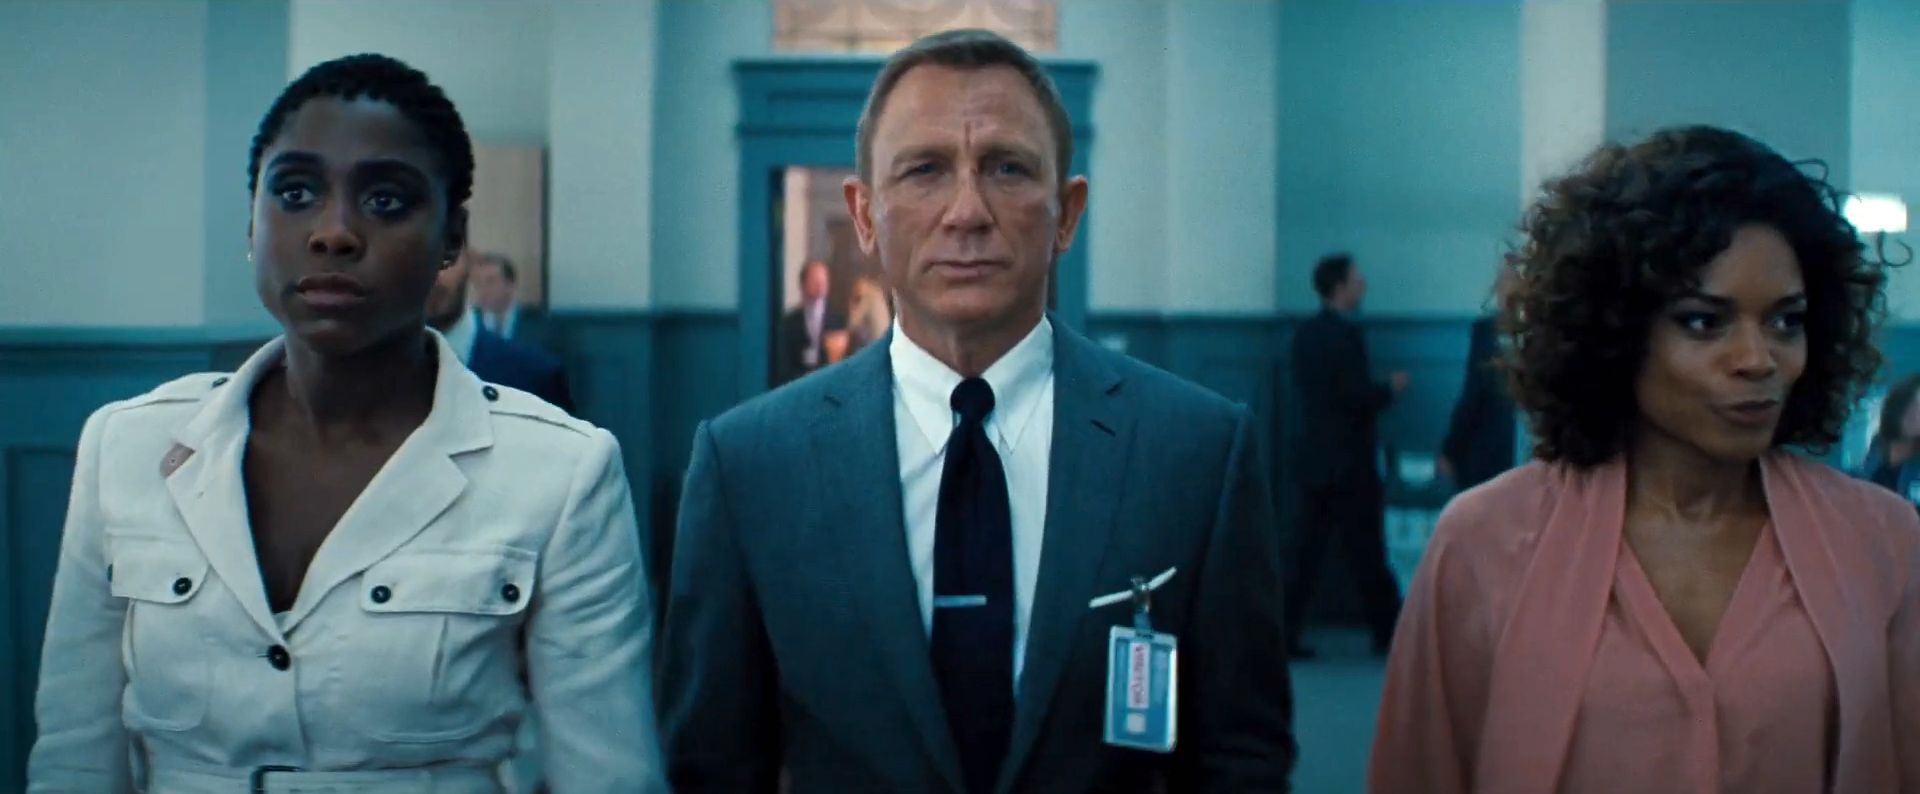 No Time To Die: Release Date And What Could James Bond Have In Store?